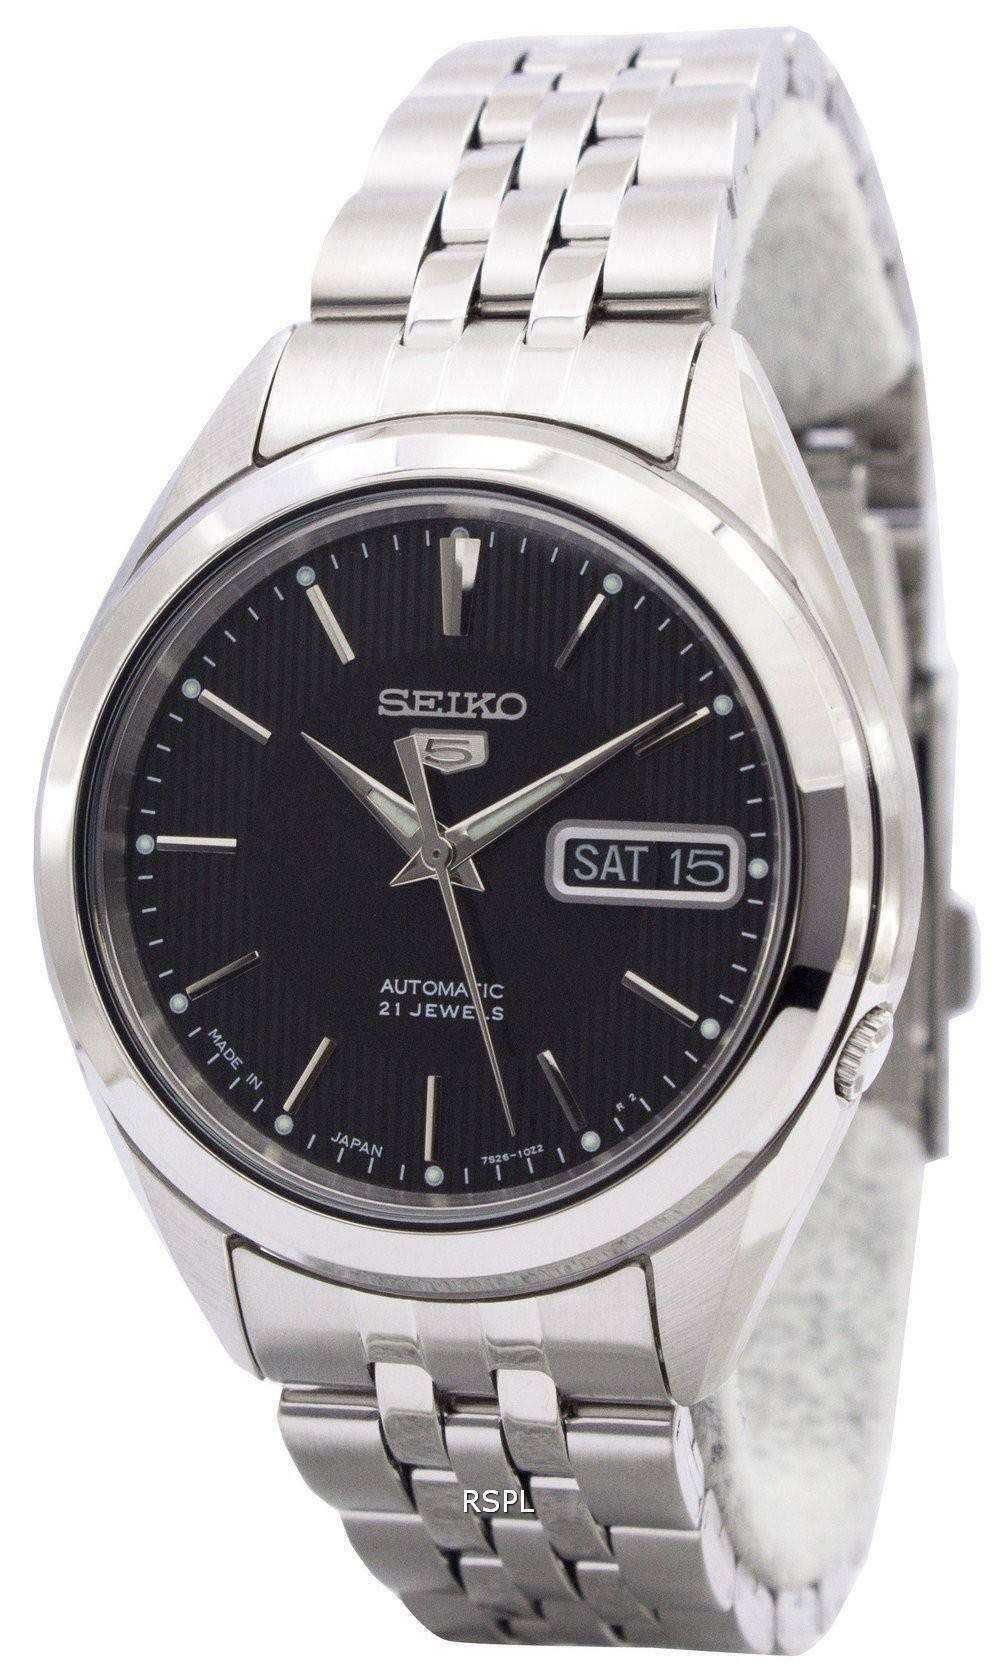 f7fa68ad969 Seiko 5 Automatic 21 Jewels Japan Made SNKL23J1 SNKL23J Men s Watch ...